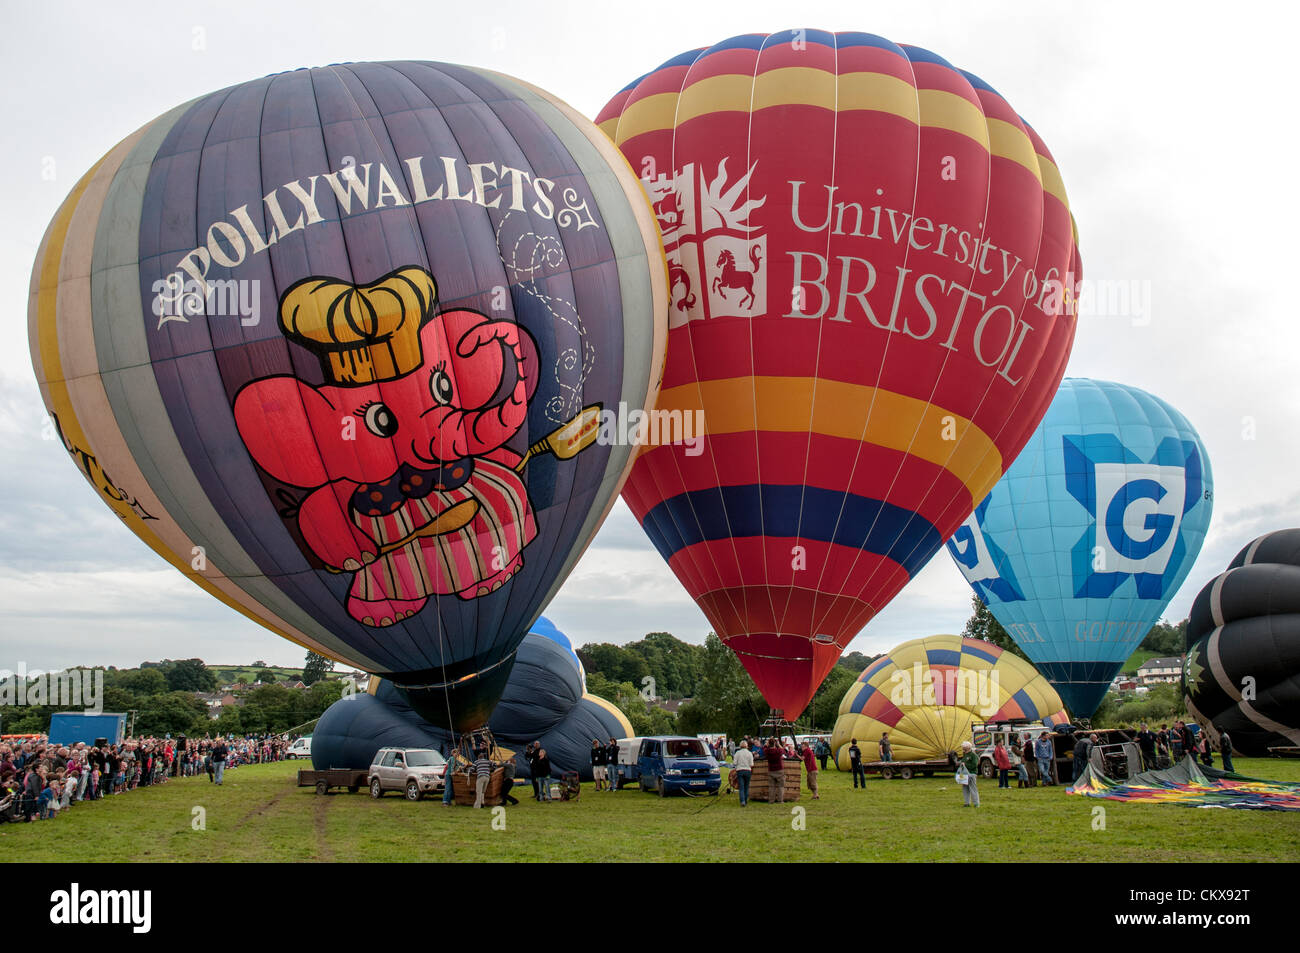 26th Aug 2012. The G-POLY, 1978 CAMERON N-77 Pollywallets ballon Cameron-Z Series (UK) (Gottex) (Z-90) (G-CCNN) balloon and the John Harris (G-CDWD)  University of Bristol balloon is prepared for launch at the Tiverton balloon festival in Tiverton, Devon, UK. Stock Photo